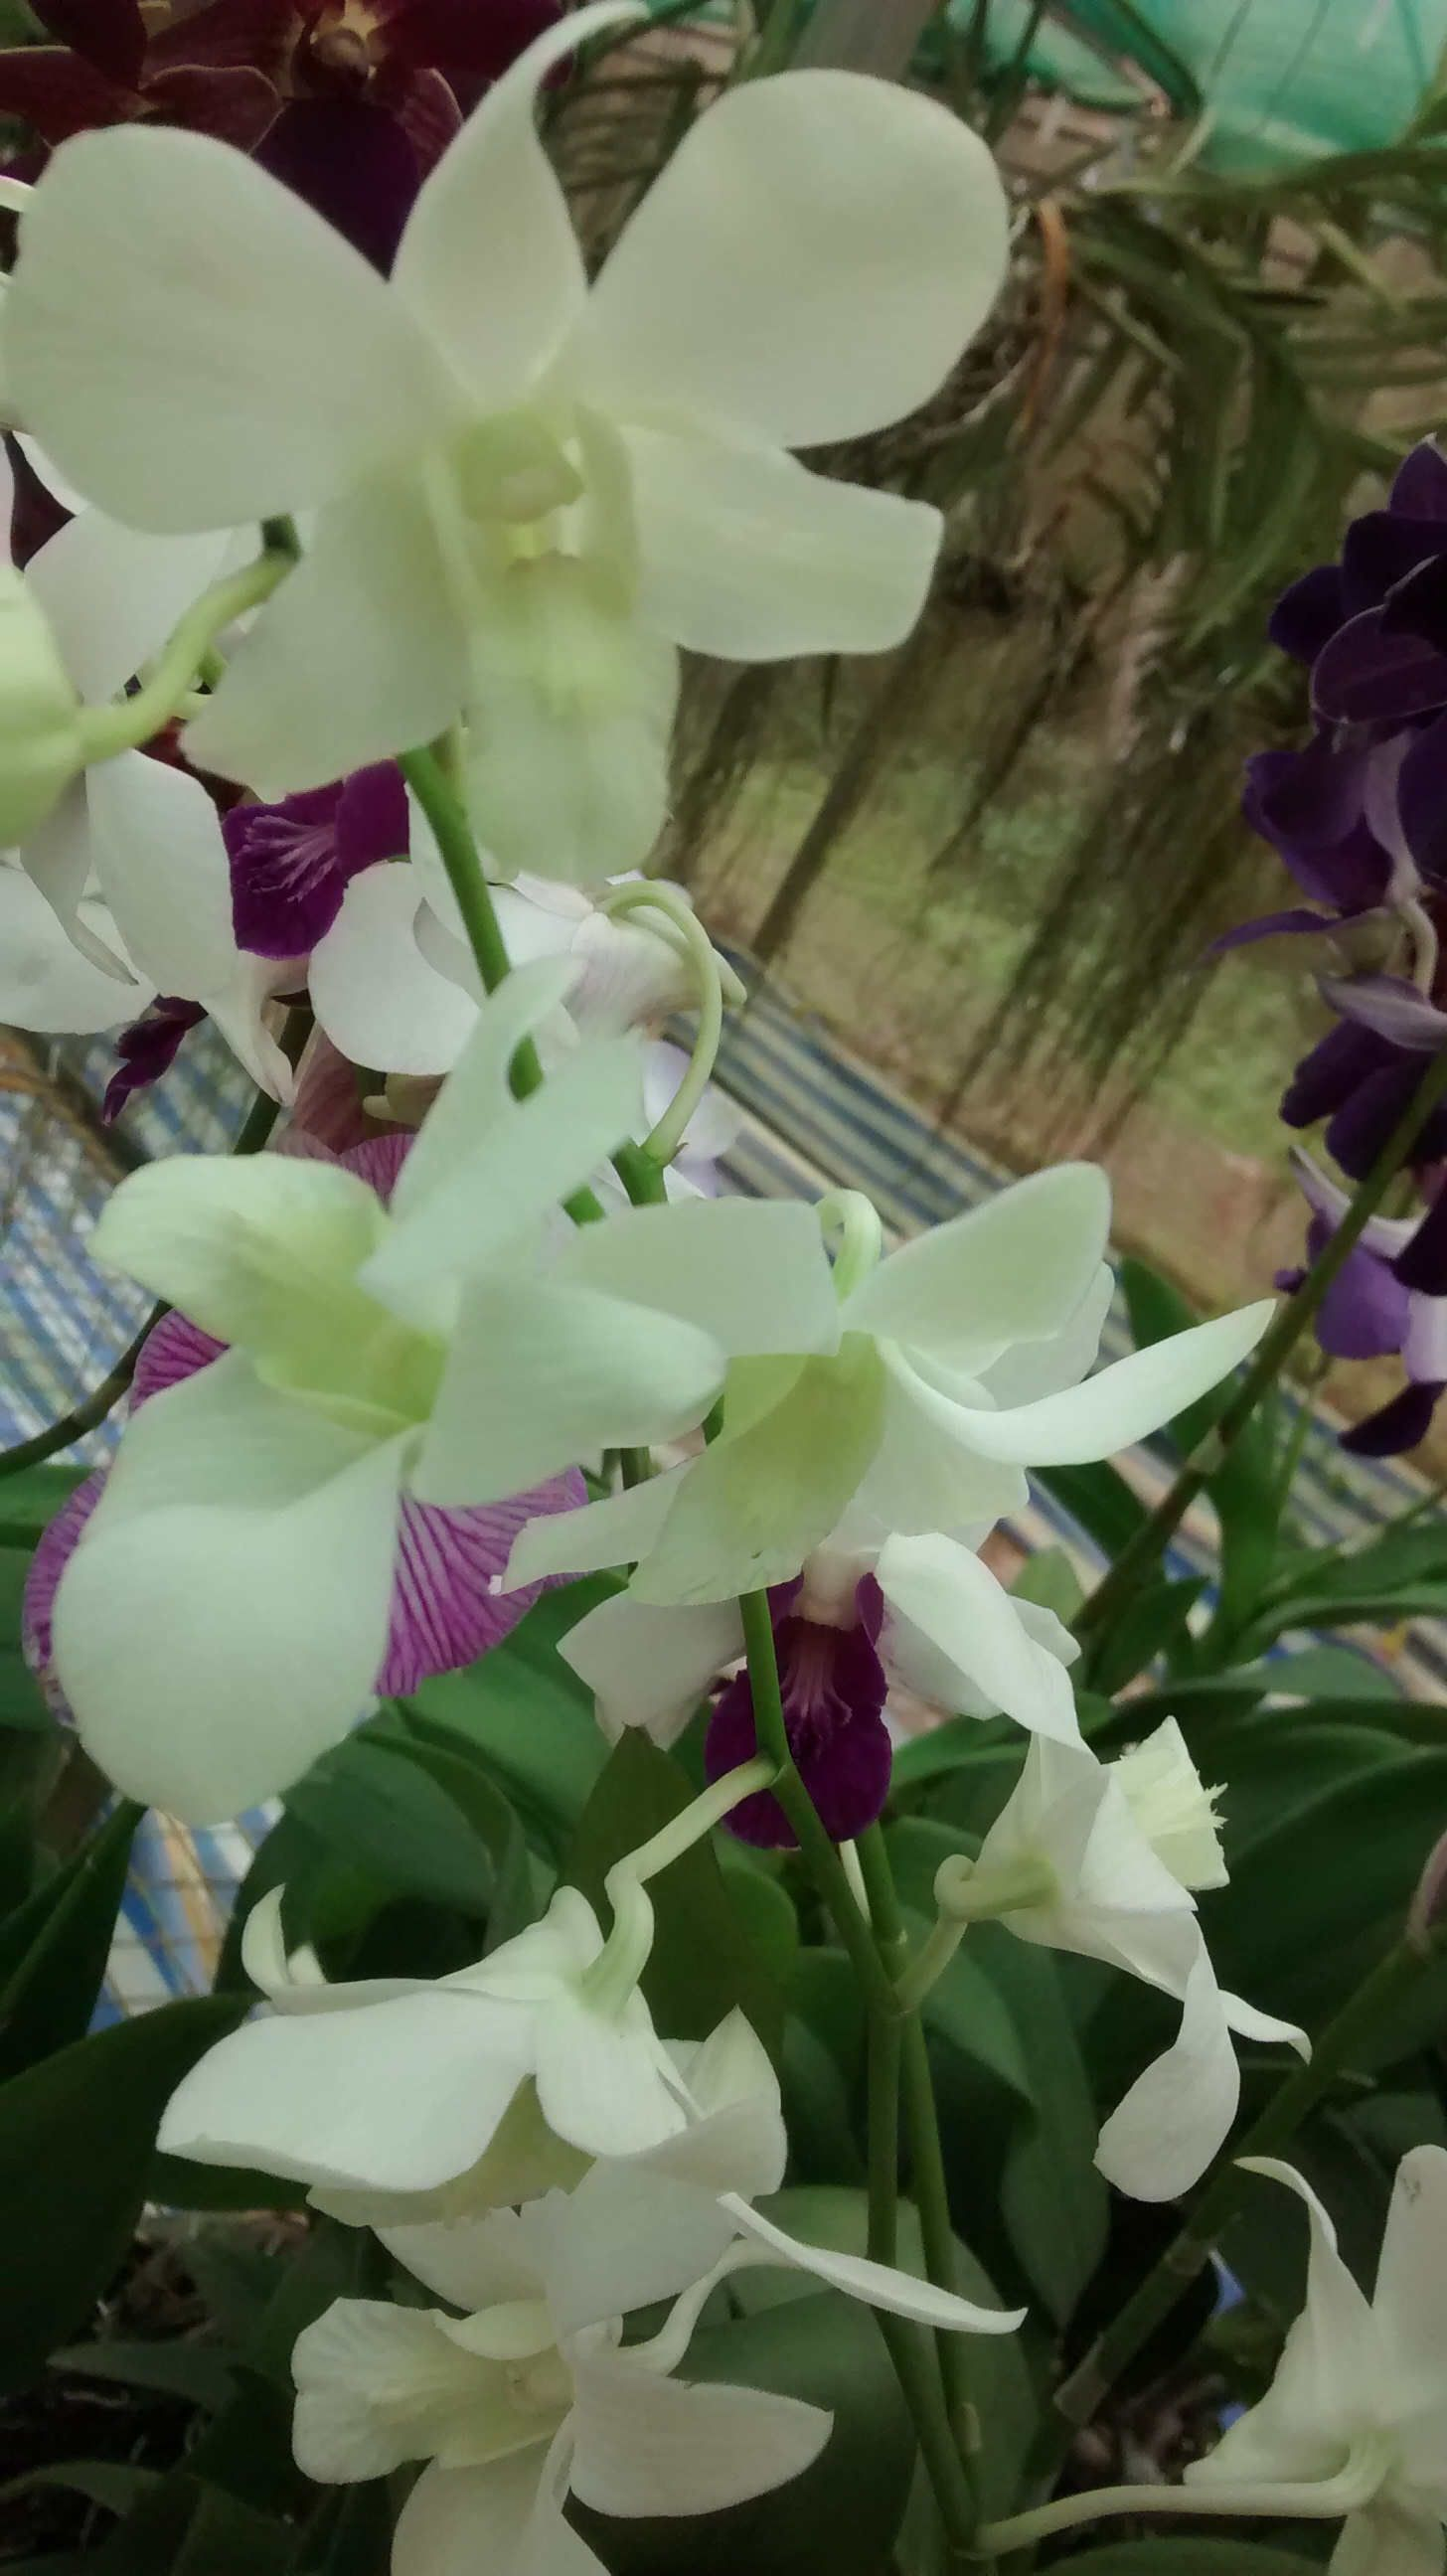 D 210716 5 Orchids And Orchid Flowers Klairvoyant Orchids Thrissur Kerala India Orchid Flower Orchids Plants Online